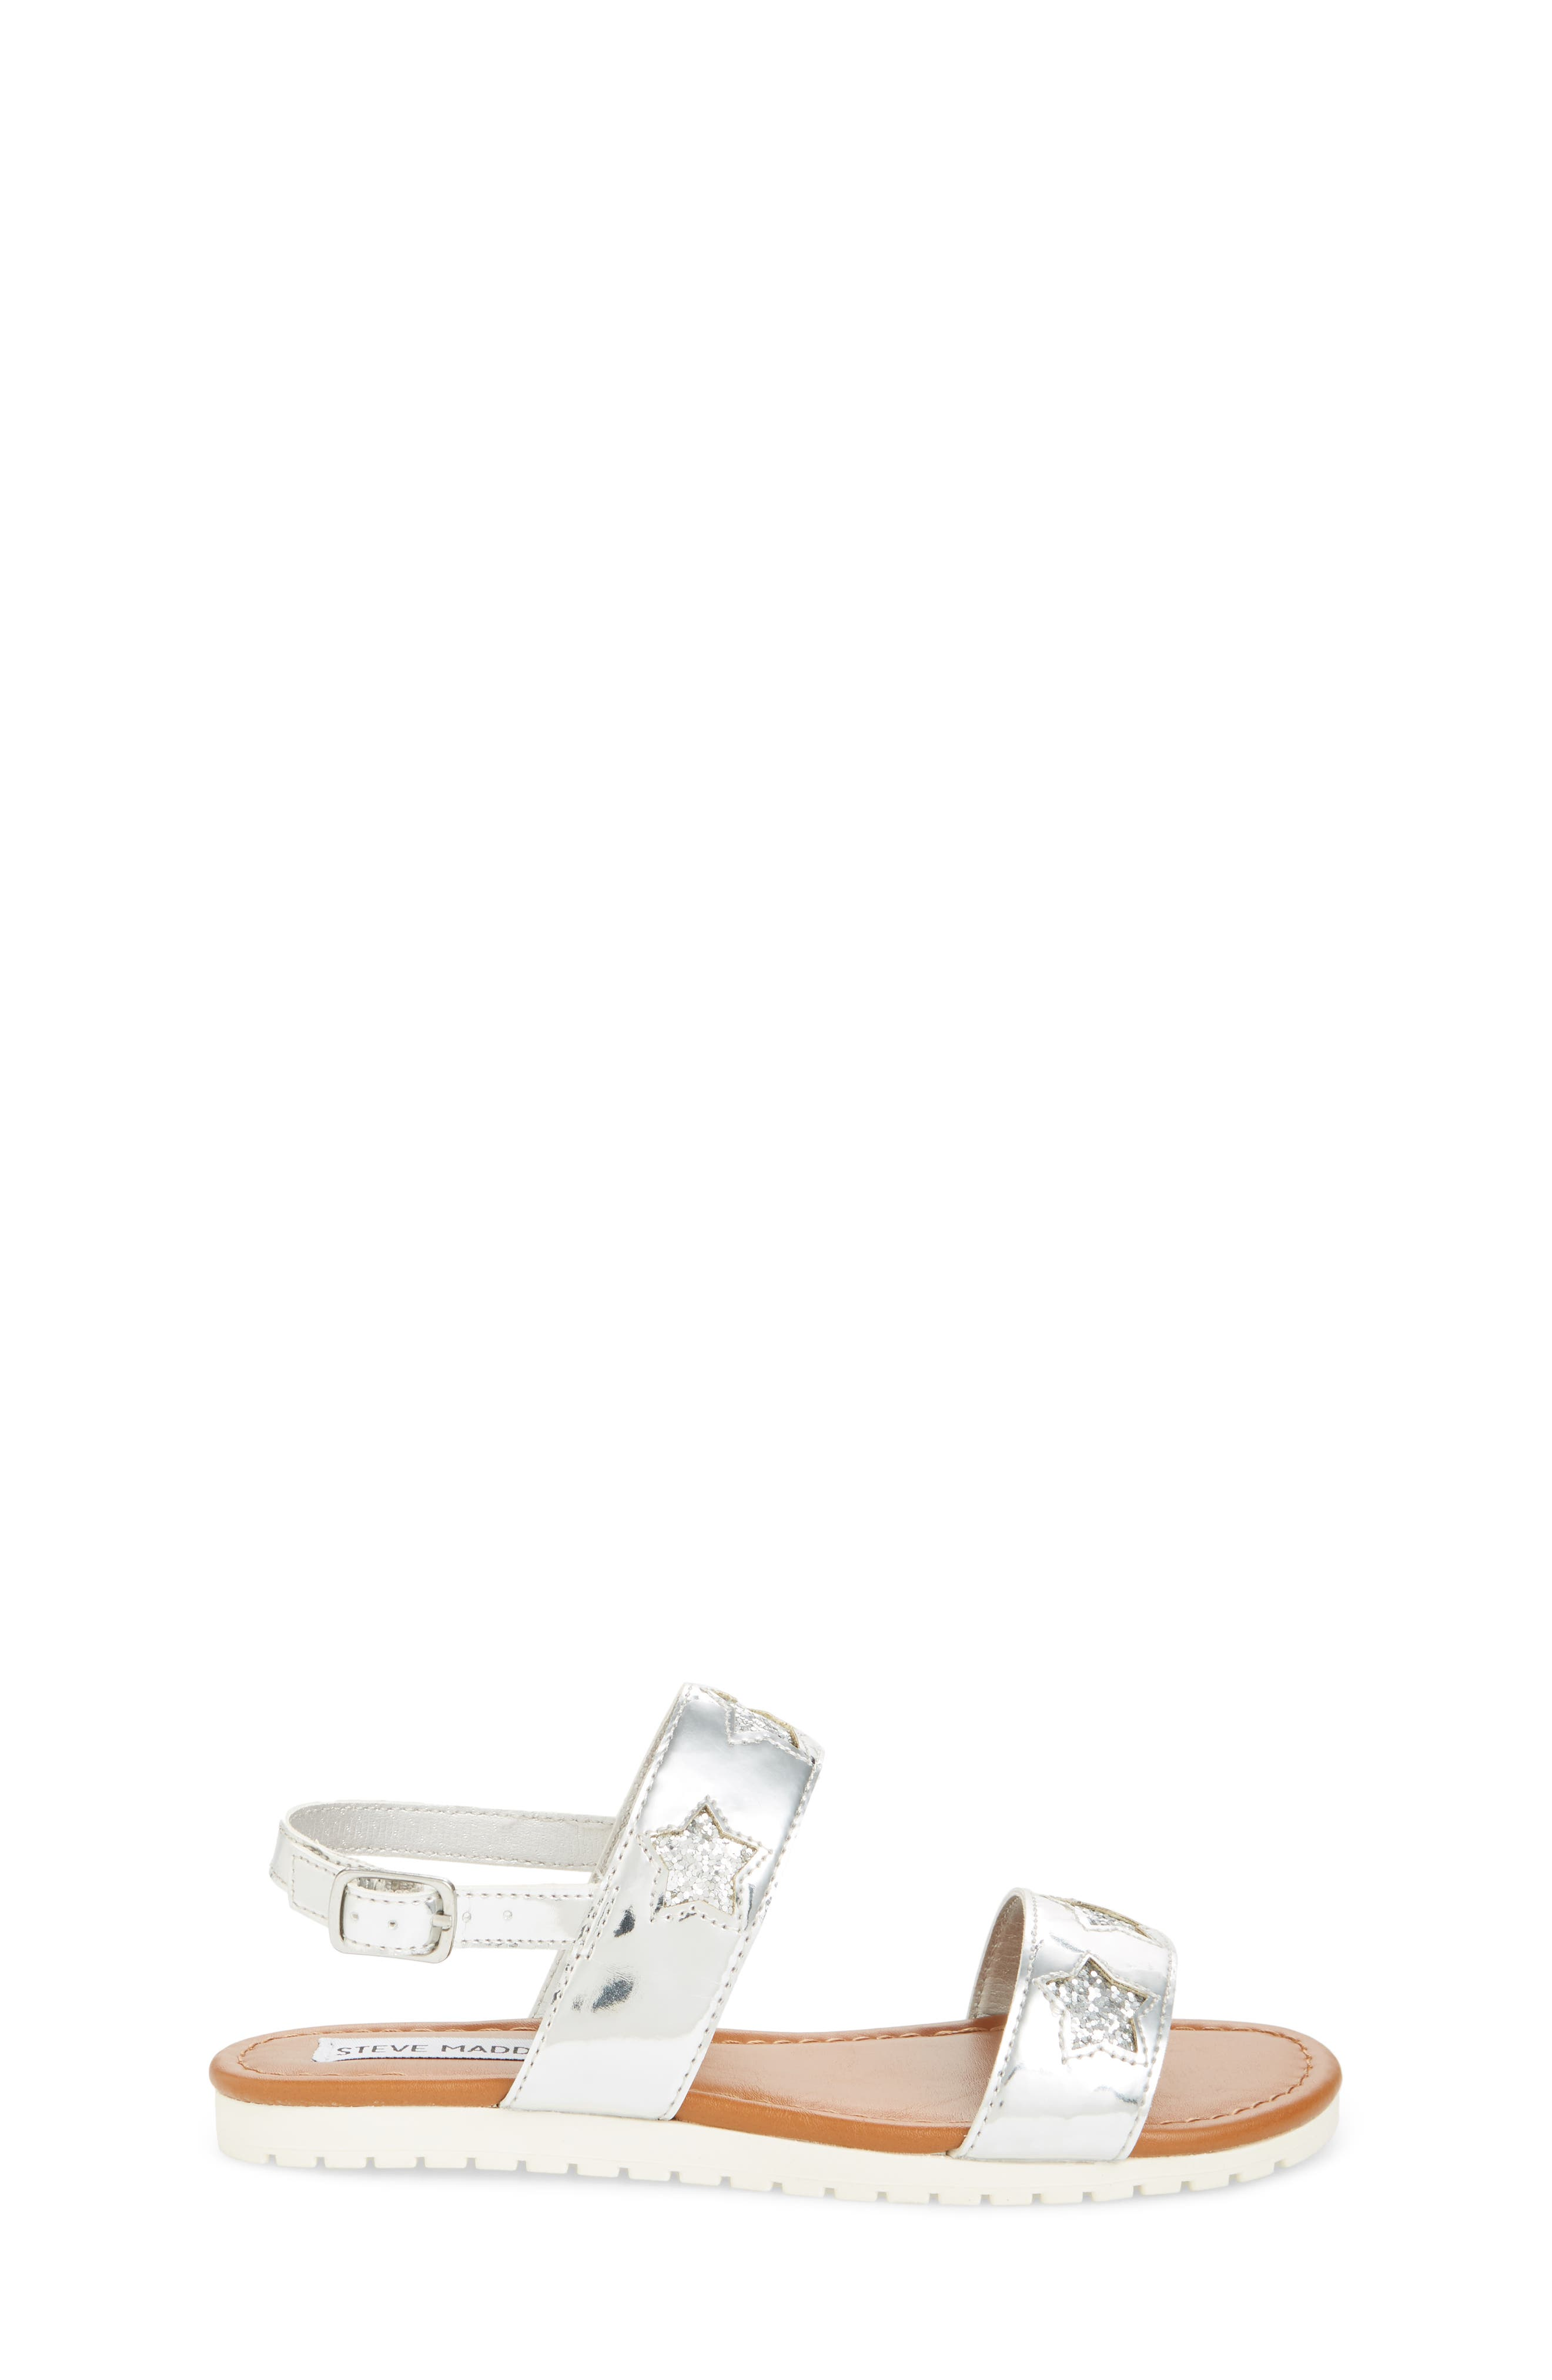 Adventure Glitter Sandal,                             Alternate thumbnail 3, color,                             SILVER